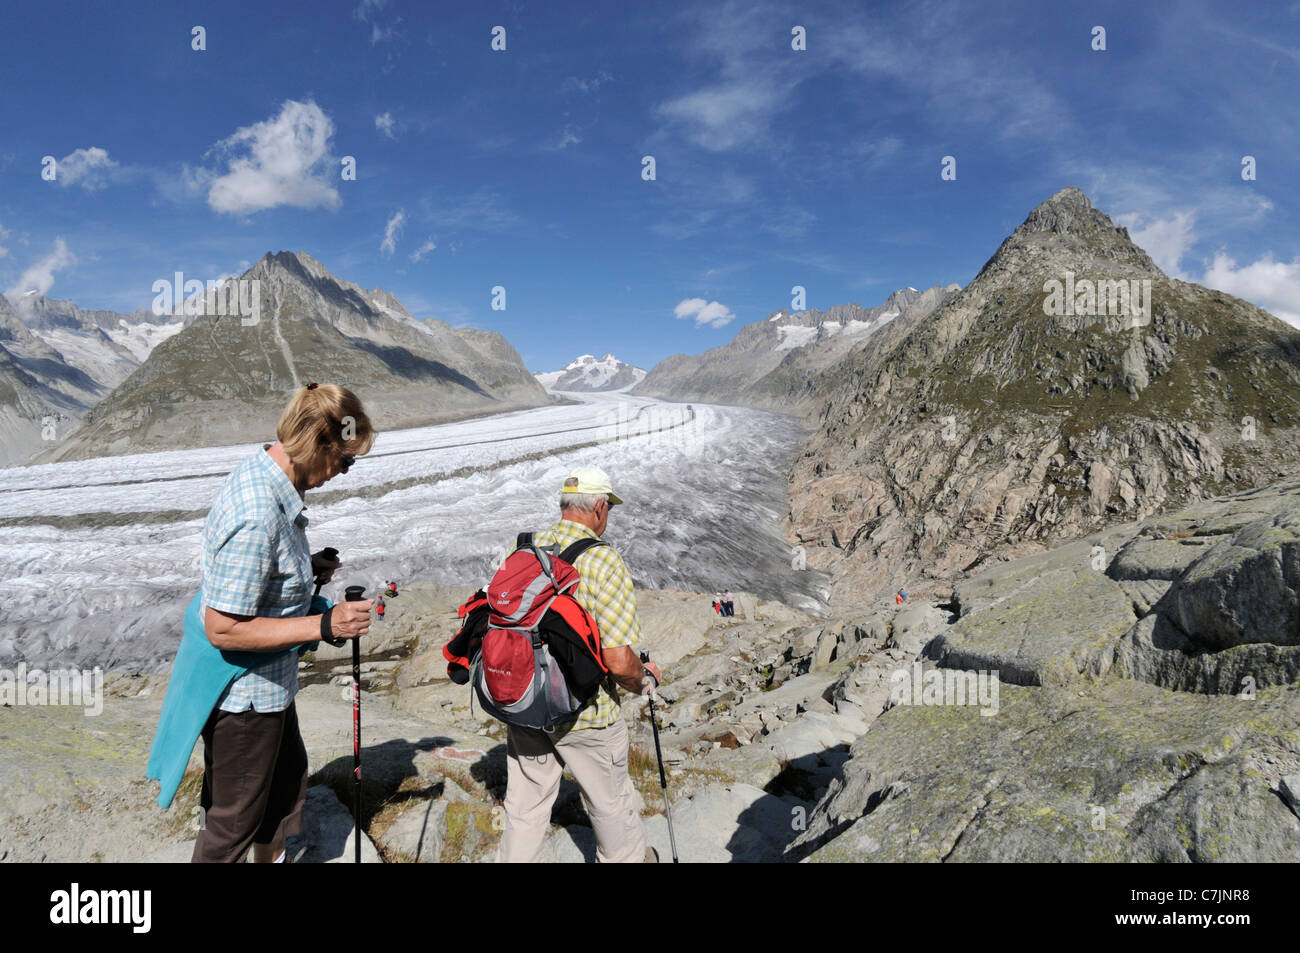 Switzerland, Valais, Western Europe, Aletsch Glacier (UNESCO world heritage site). Hikers on the panorama trail. - Stock Image